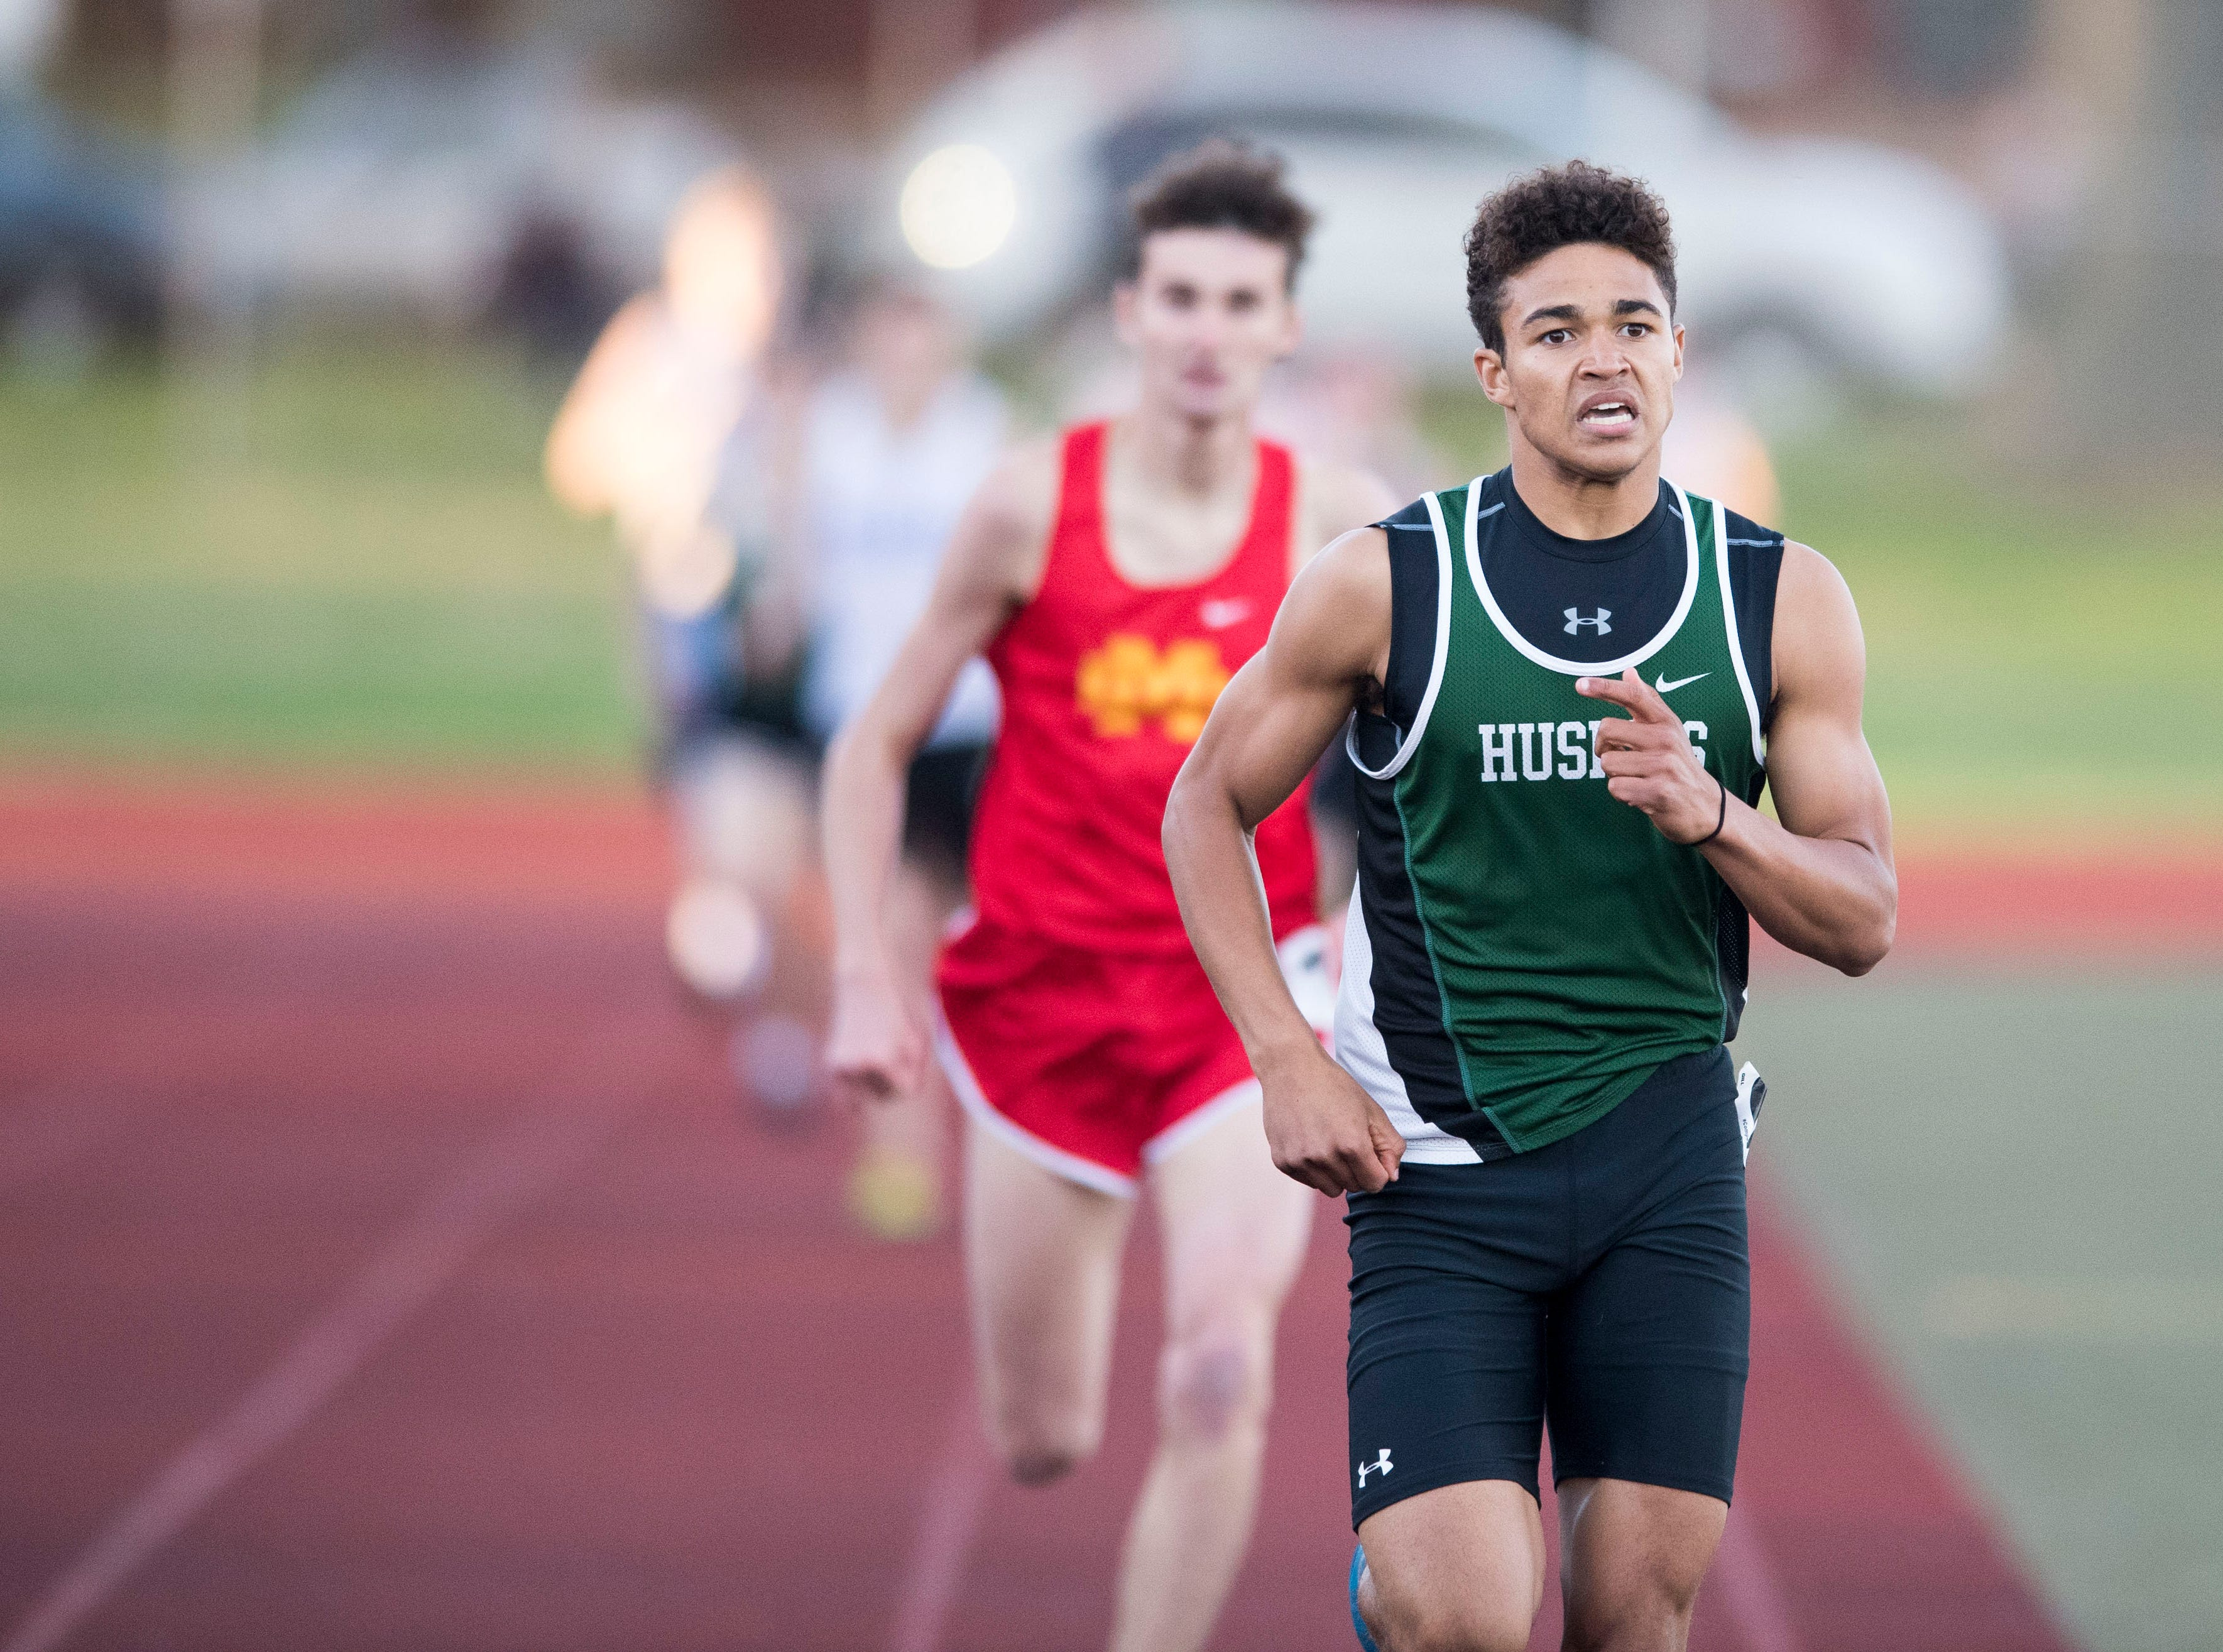 North's Drake Dickens leads in the boys 800m run during the 2019 City Track and Field meet at Central High School Friday, April 12, 2019.